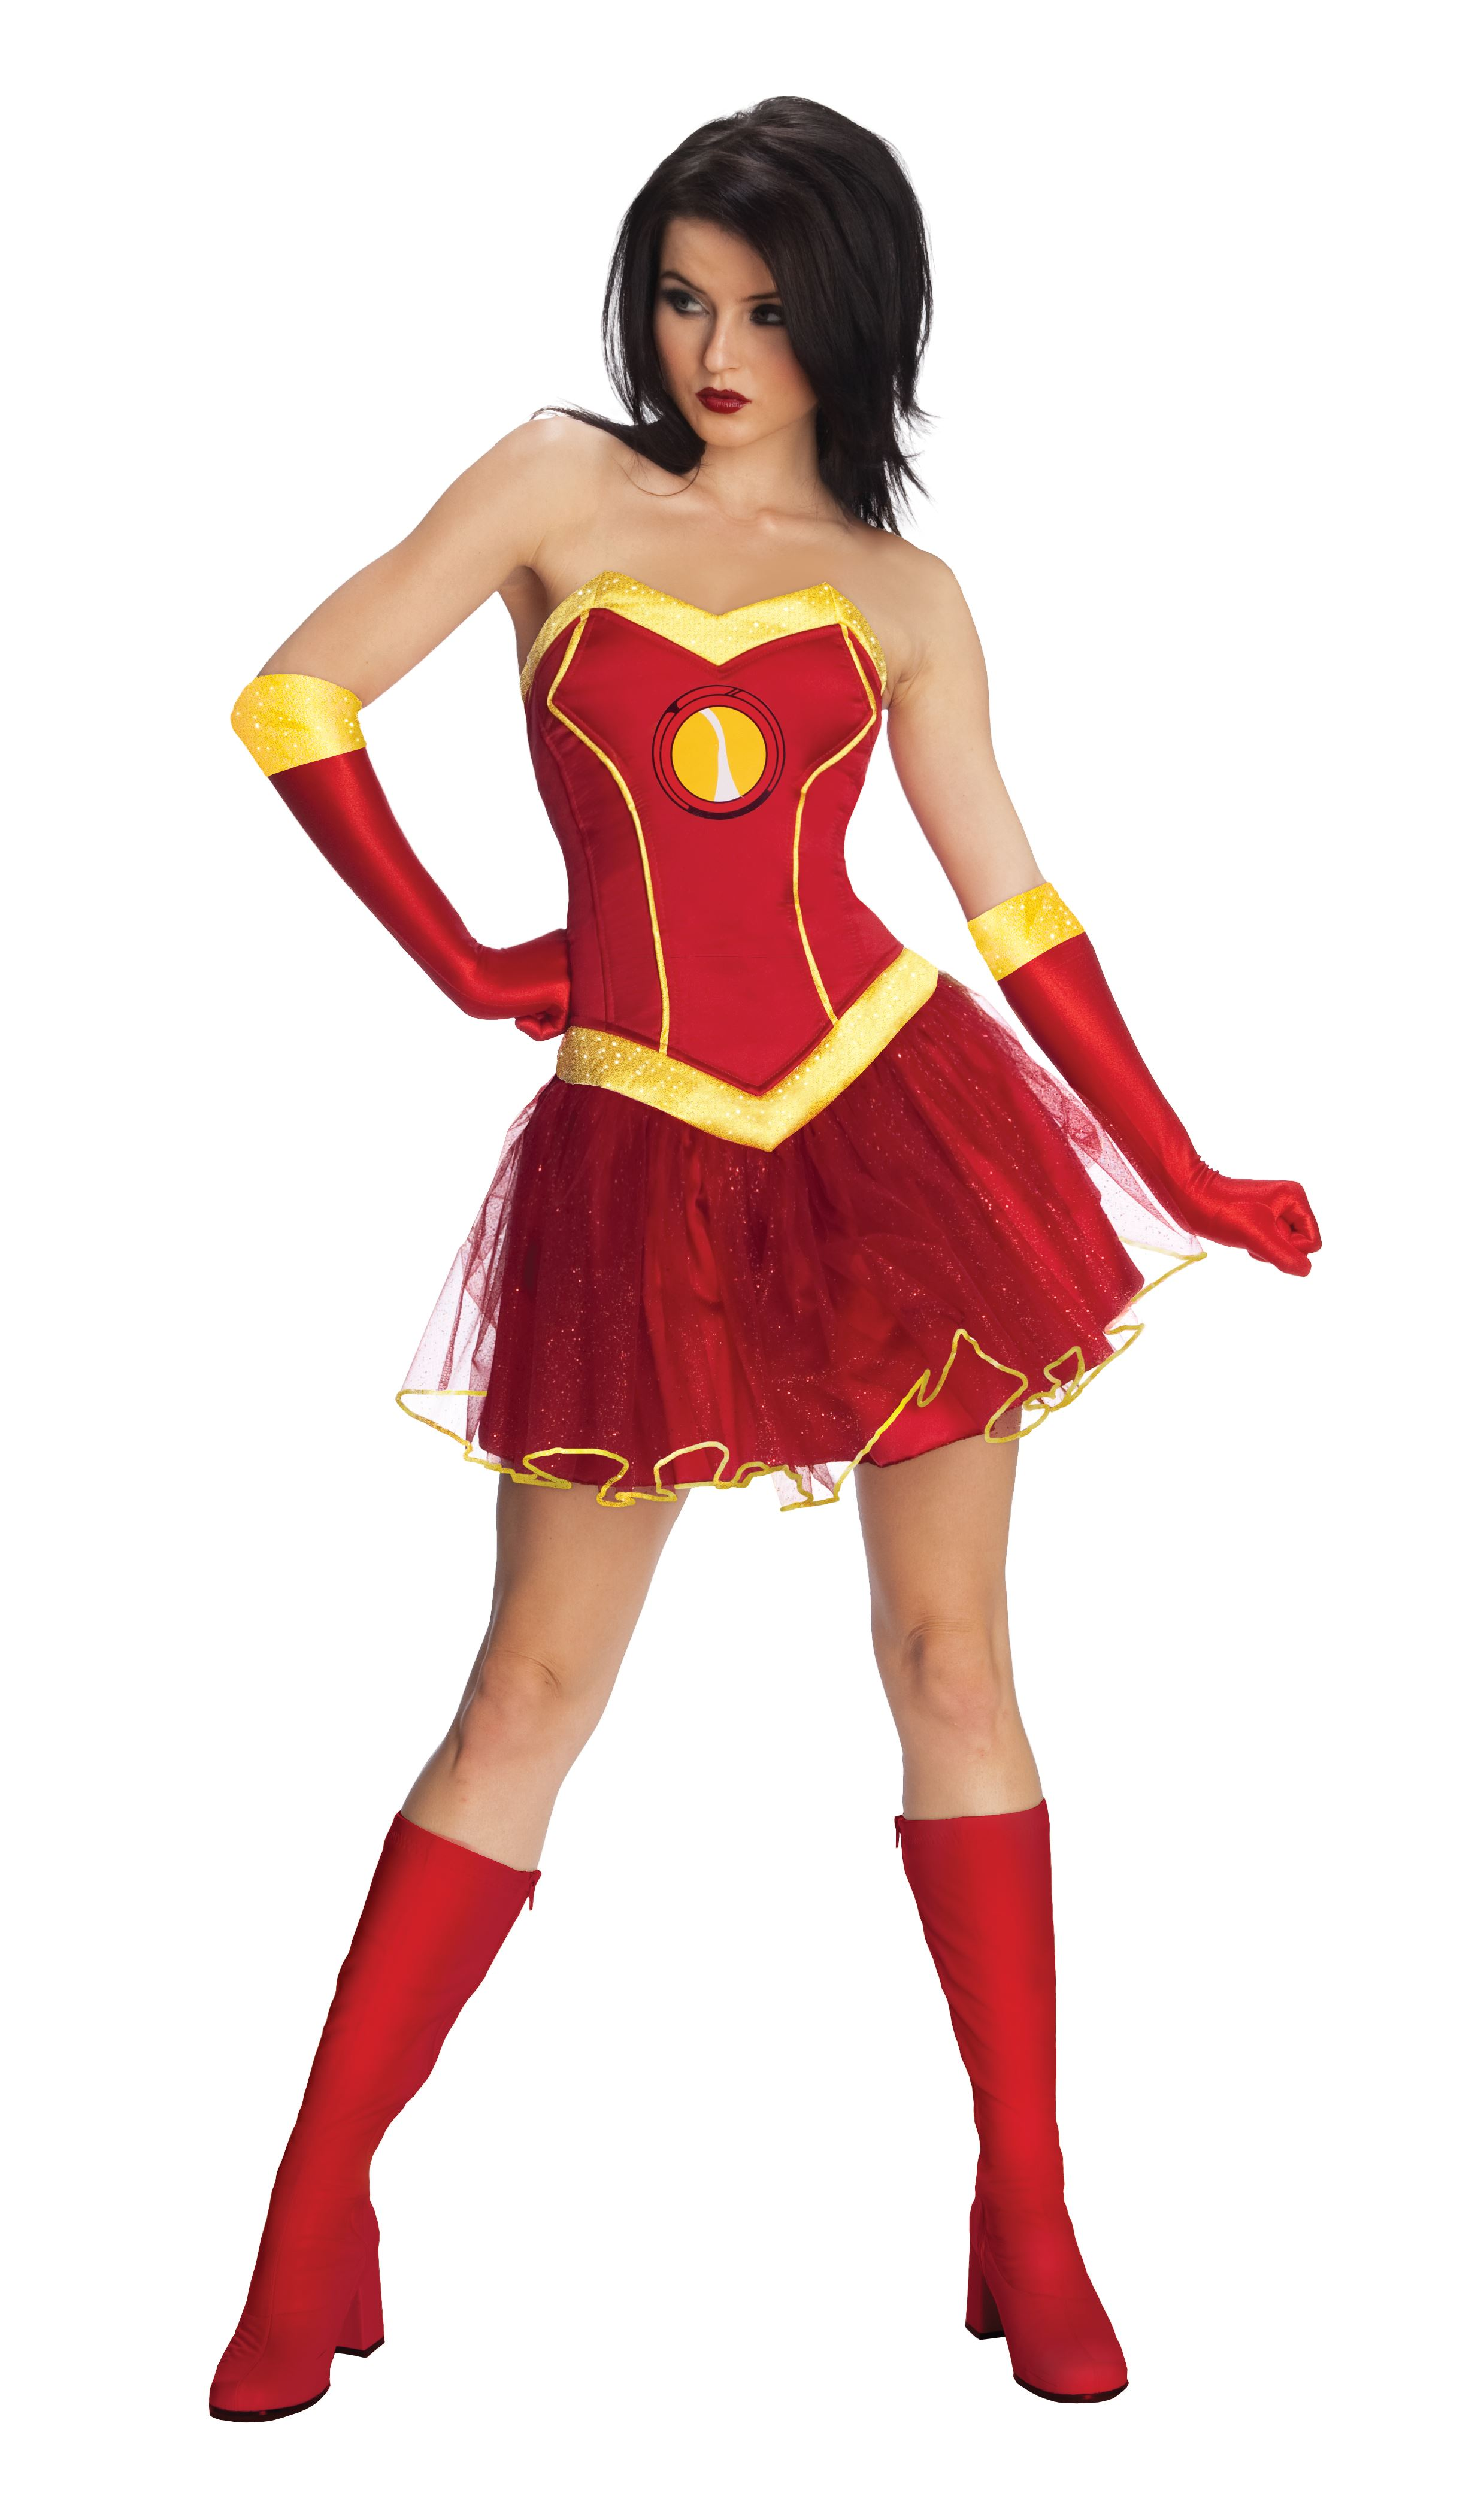 Adult Rescue Iron Woman Costume  sc 1 st  The Costume Land & Adult Rescue Iron Woman Costume | $45.99 | The Costume Land